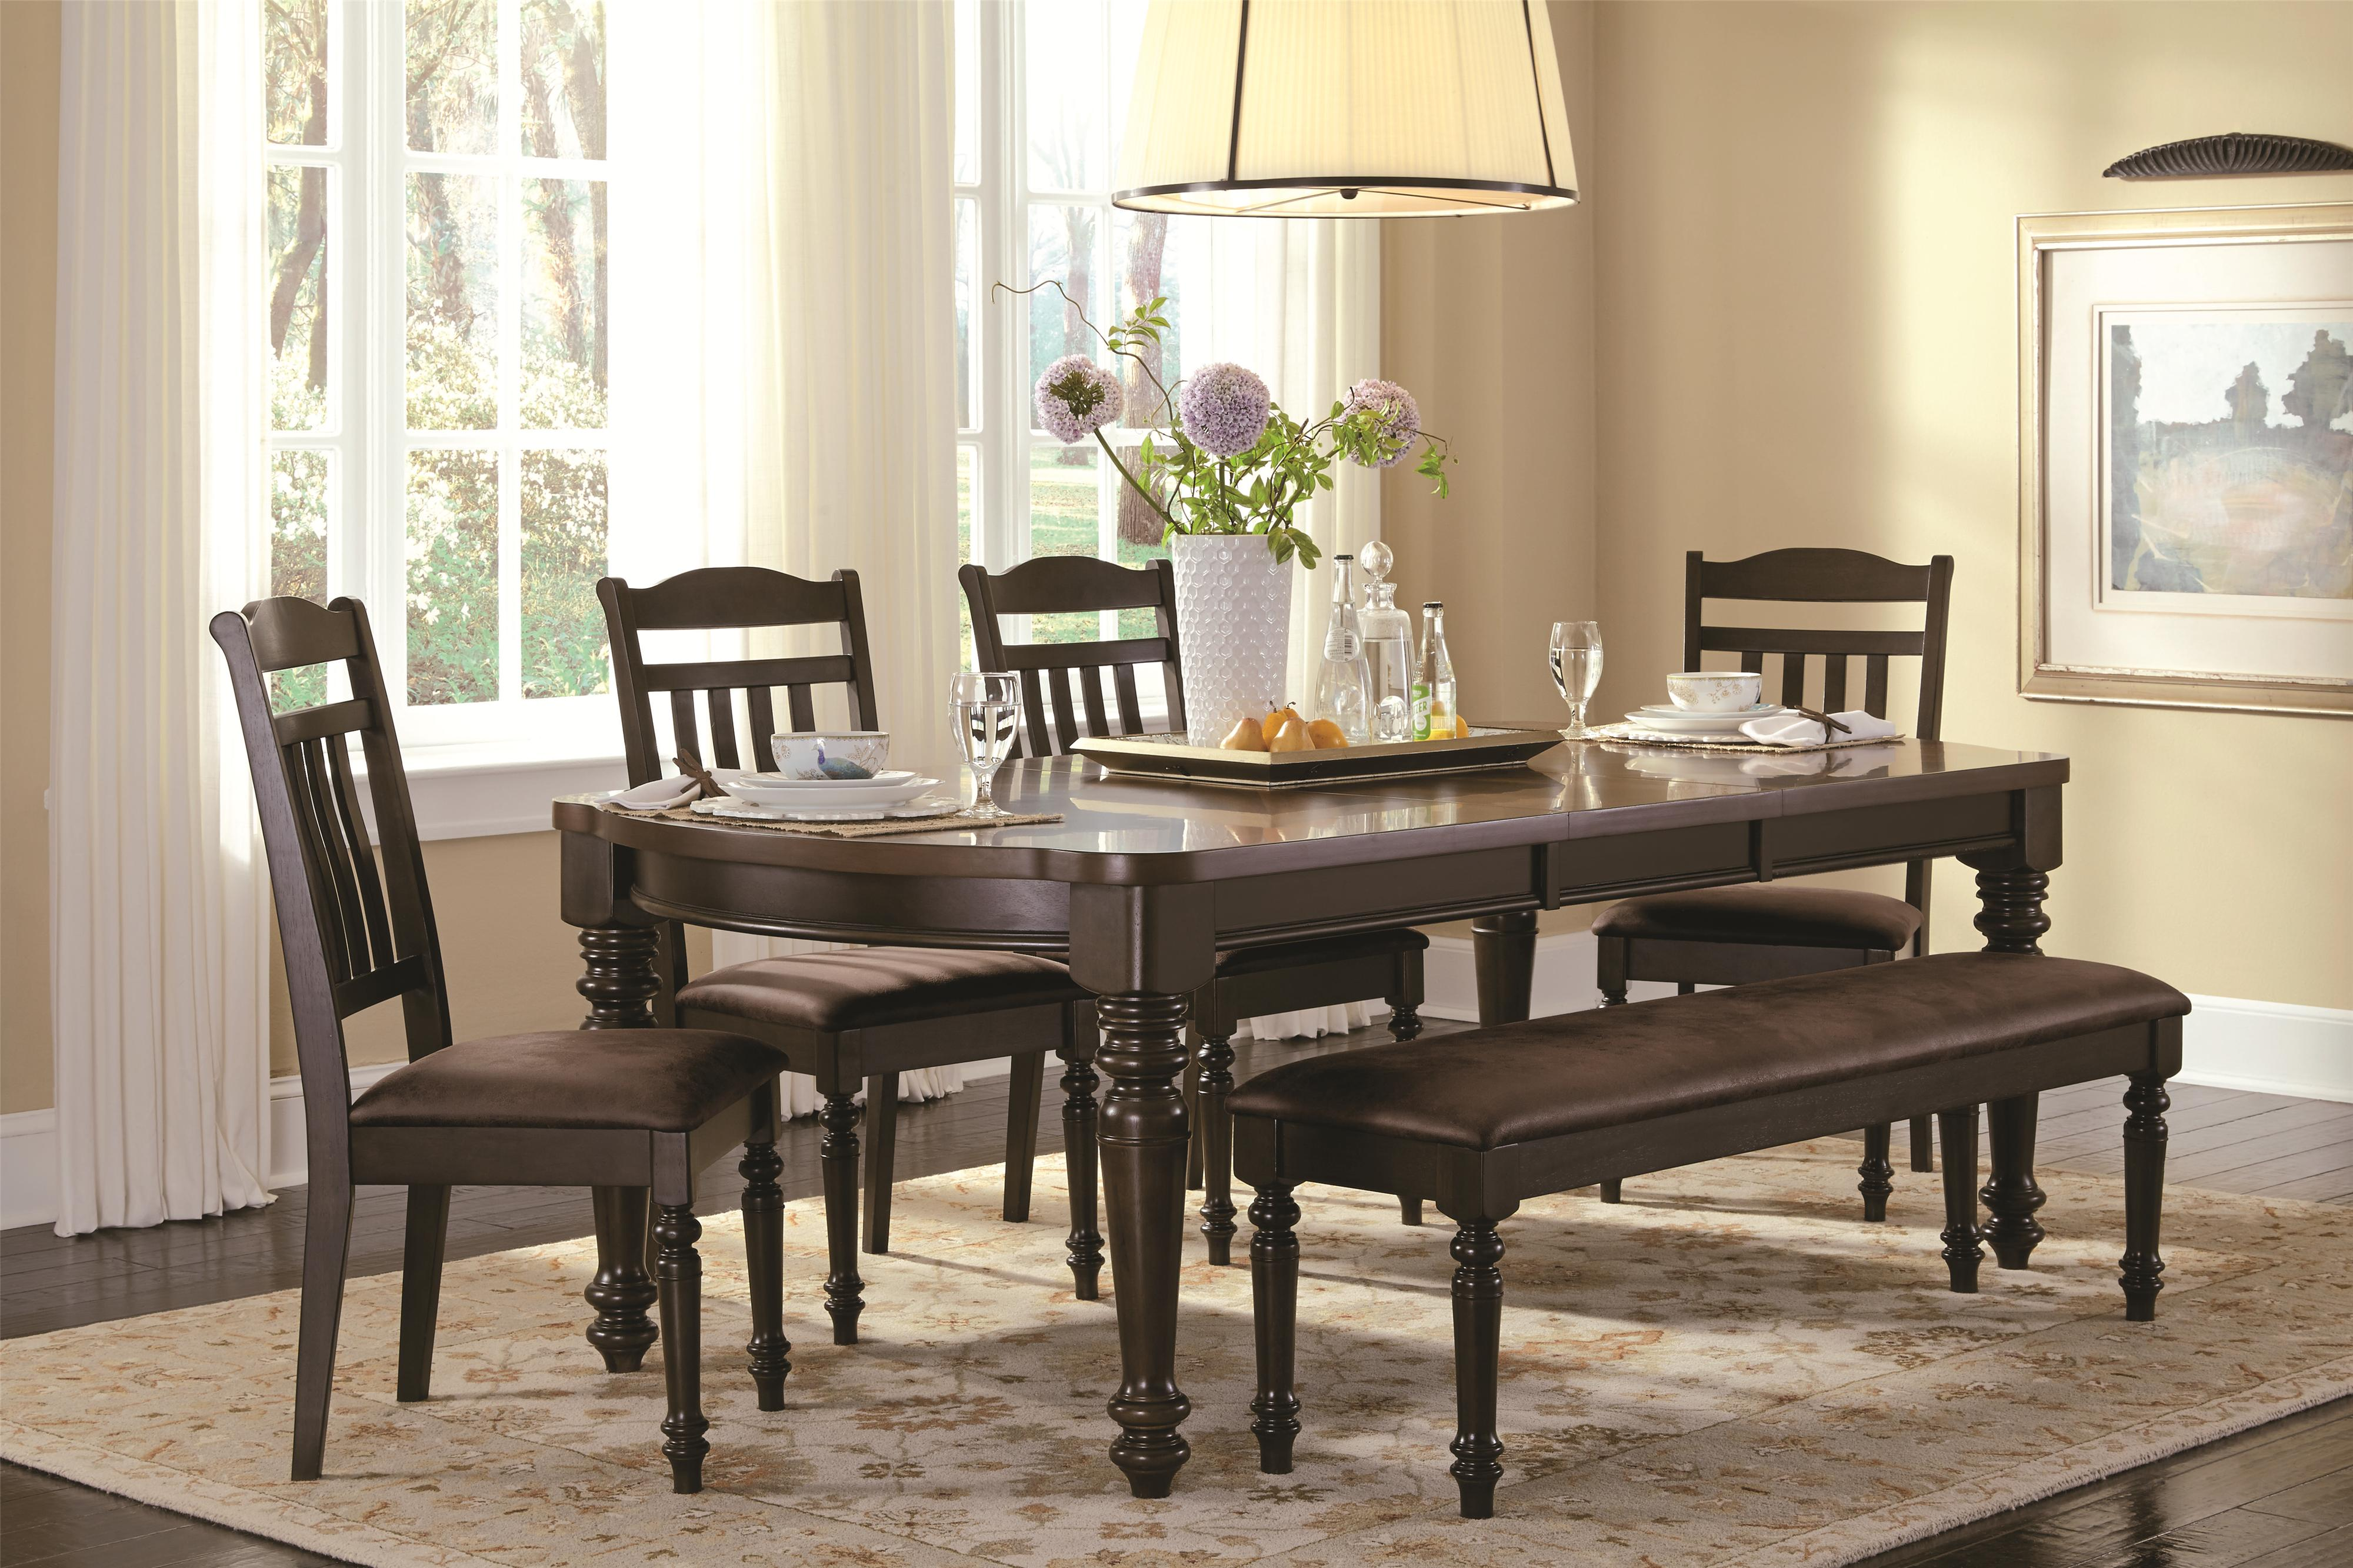 Bench Chairs Mulligan Country Style Table And Chair Set With Bench